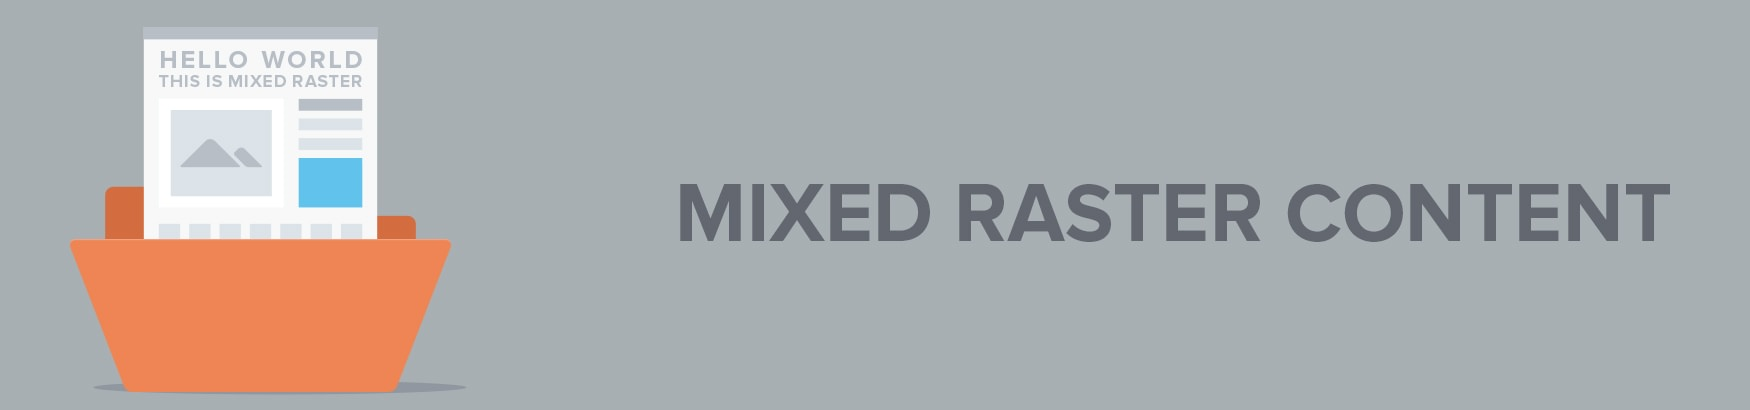 Mixed Raster Content (MRC)